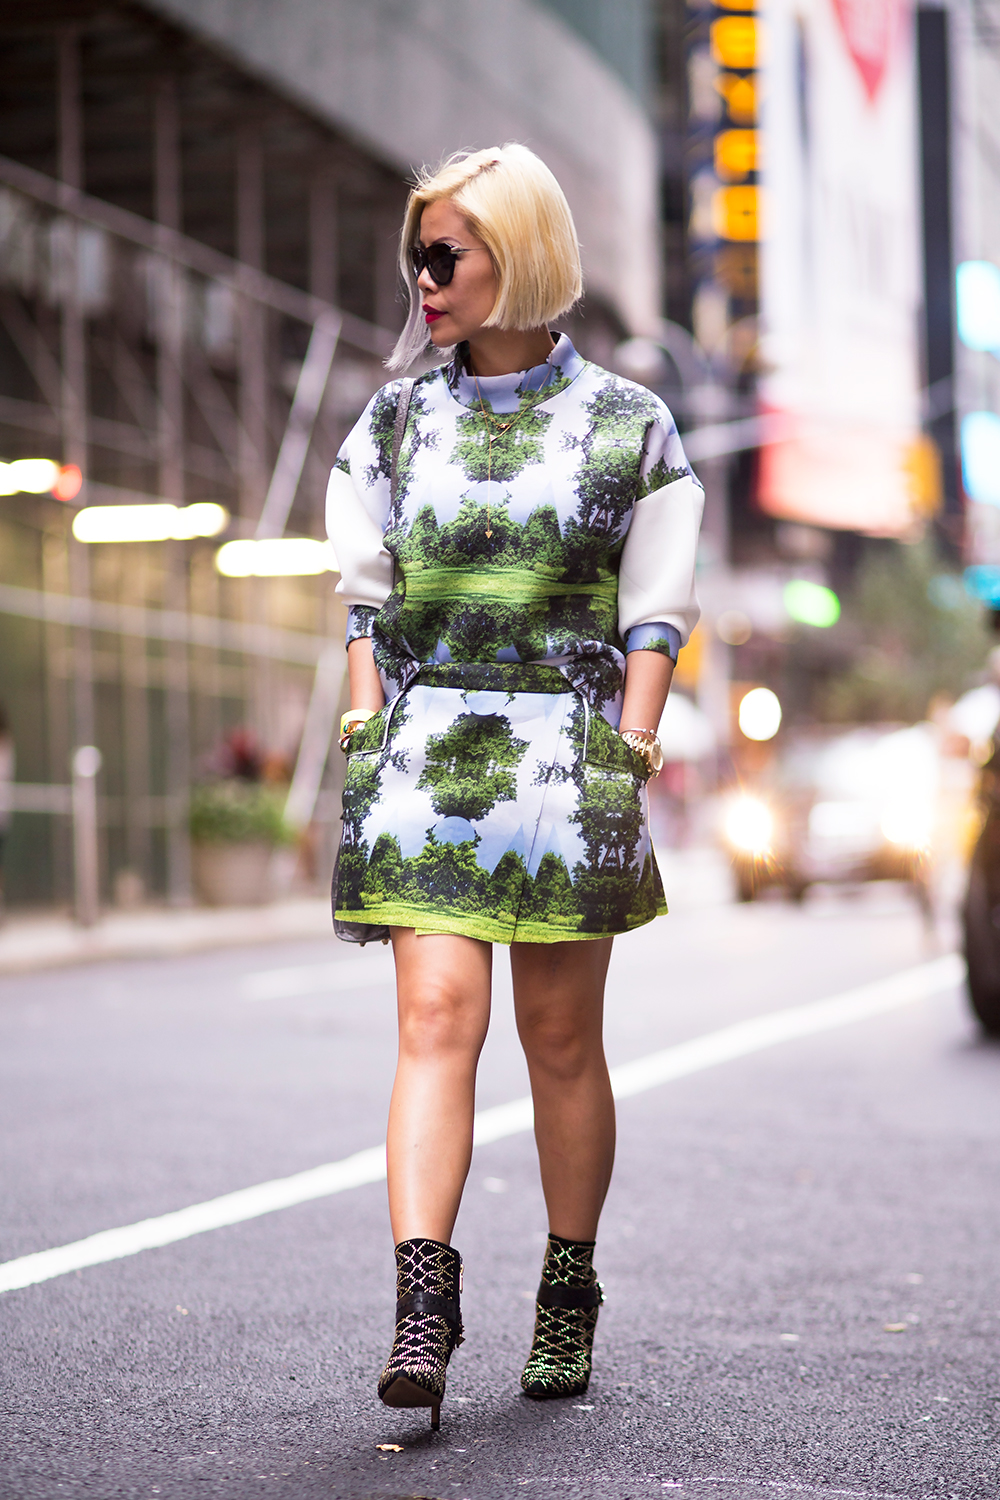 CrystalPhuong- New York Fashion Week 2015- Streetstyle